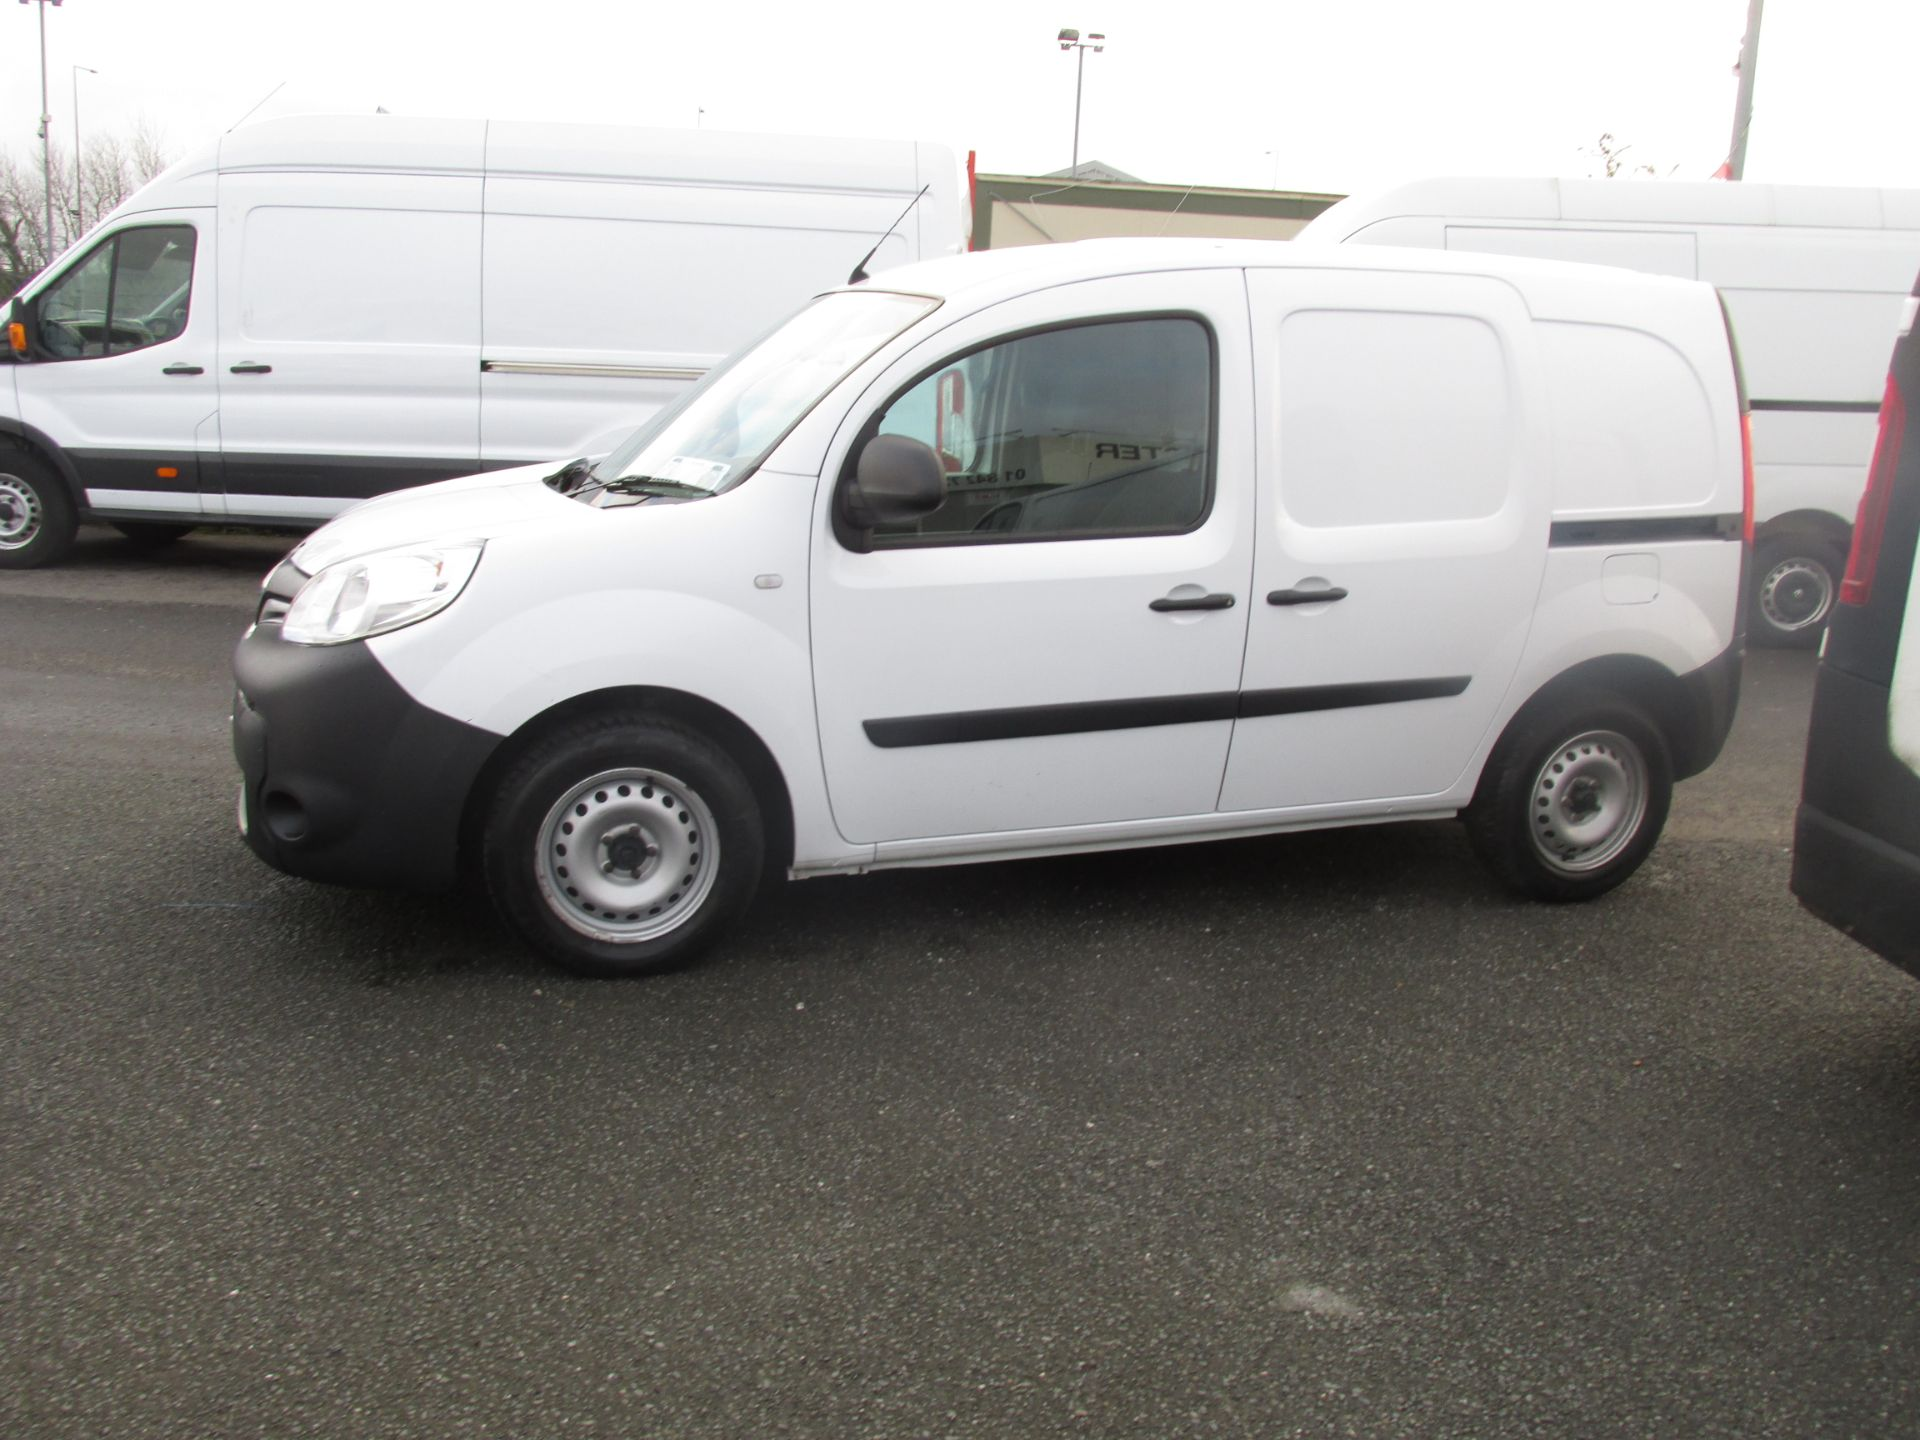 2016 Renault Kangoo ML19 Energy DCI 75 Business 2D - 100 VANS TO VIEW IN VM SANTRY DUBLIN - (162D21651) Image 6